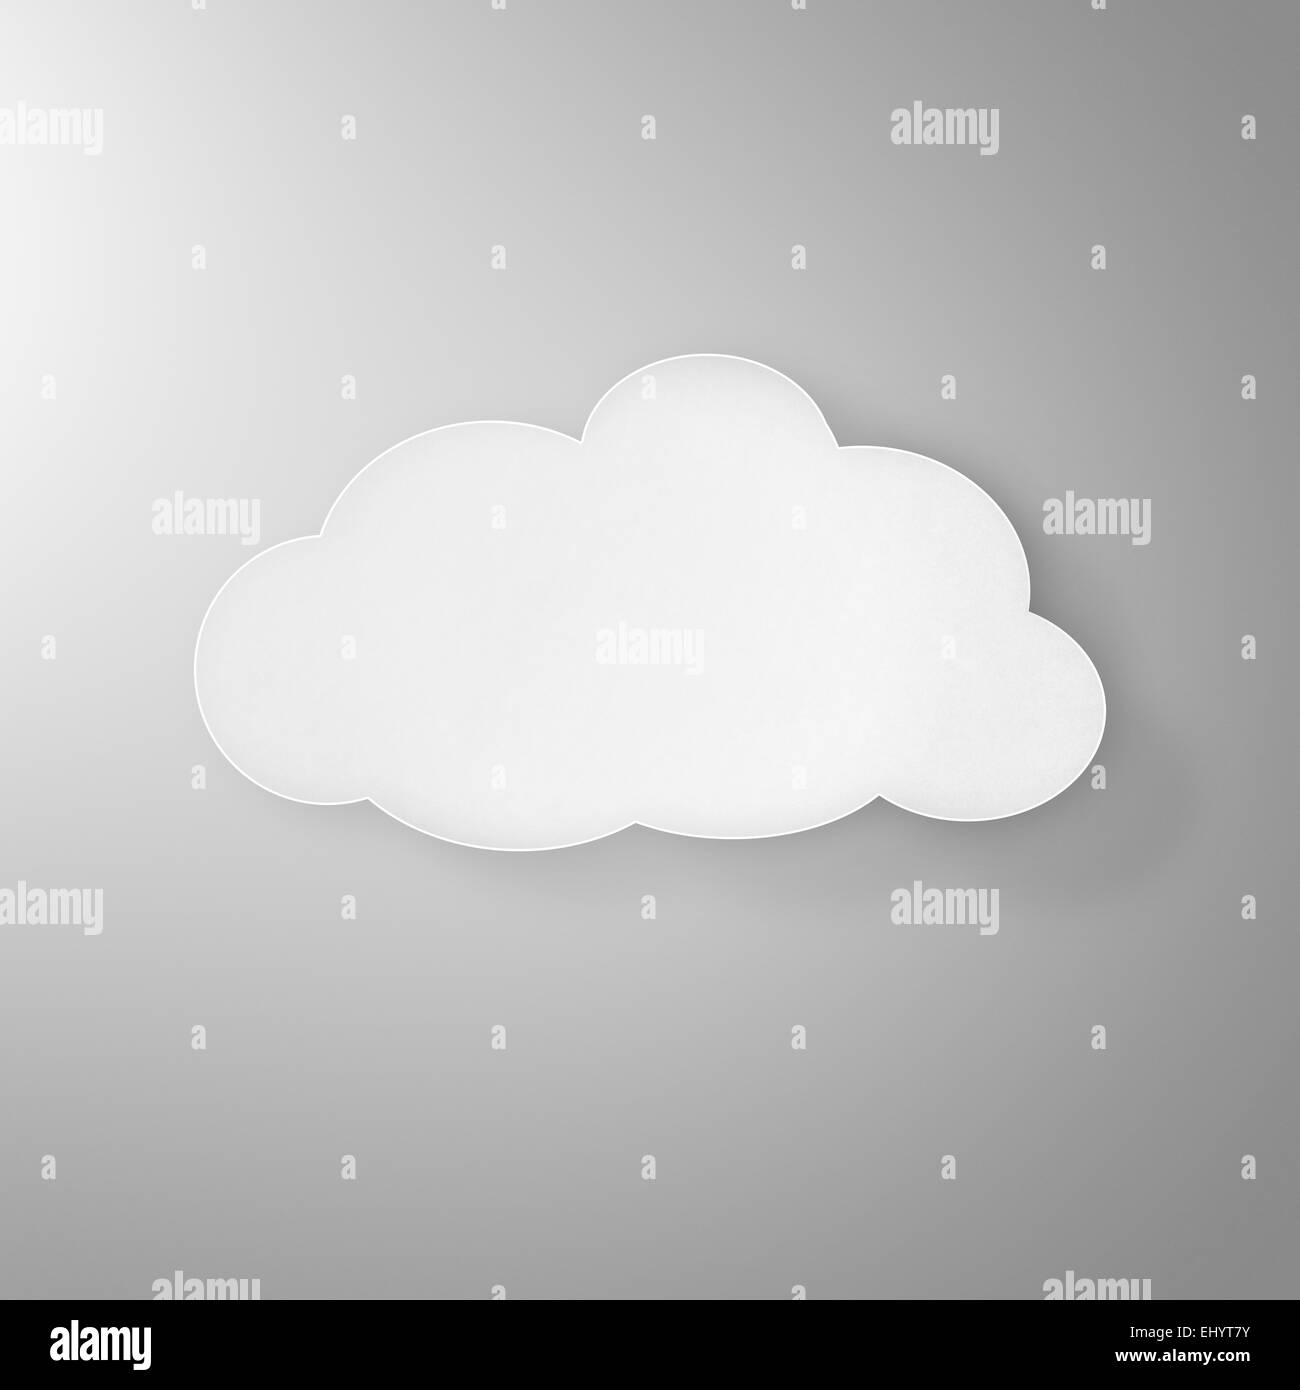 Modern white paper cloud icon with shadows on a gray background, which could represent cloud computing, weather... - Stock Image